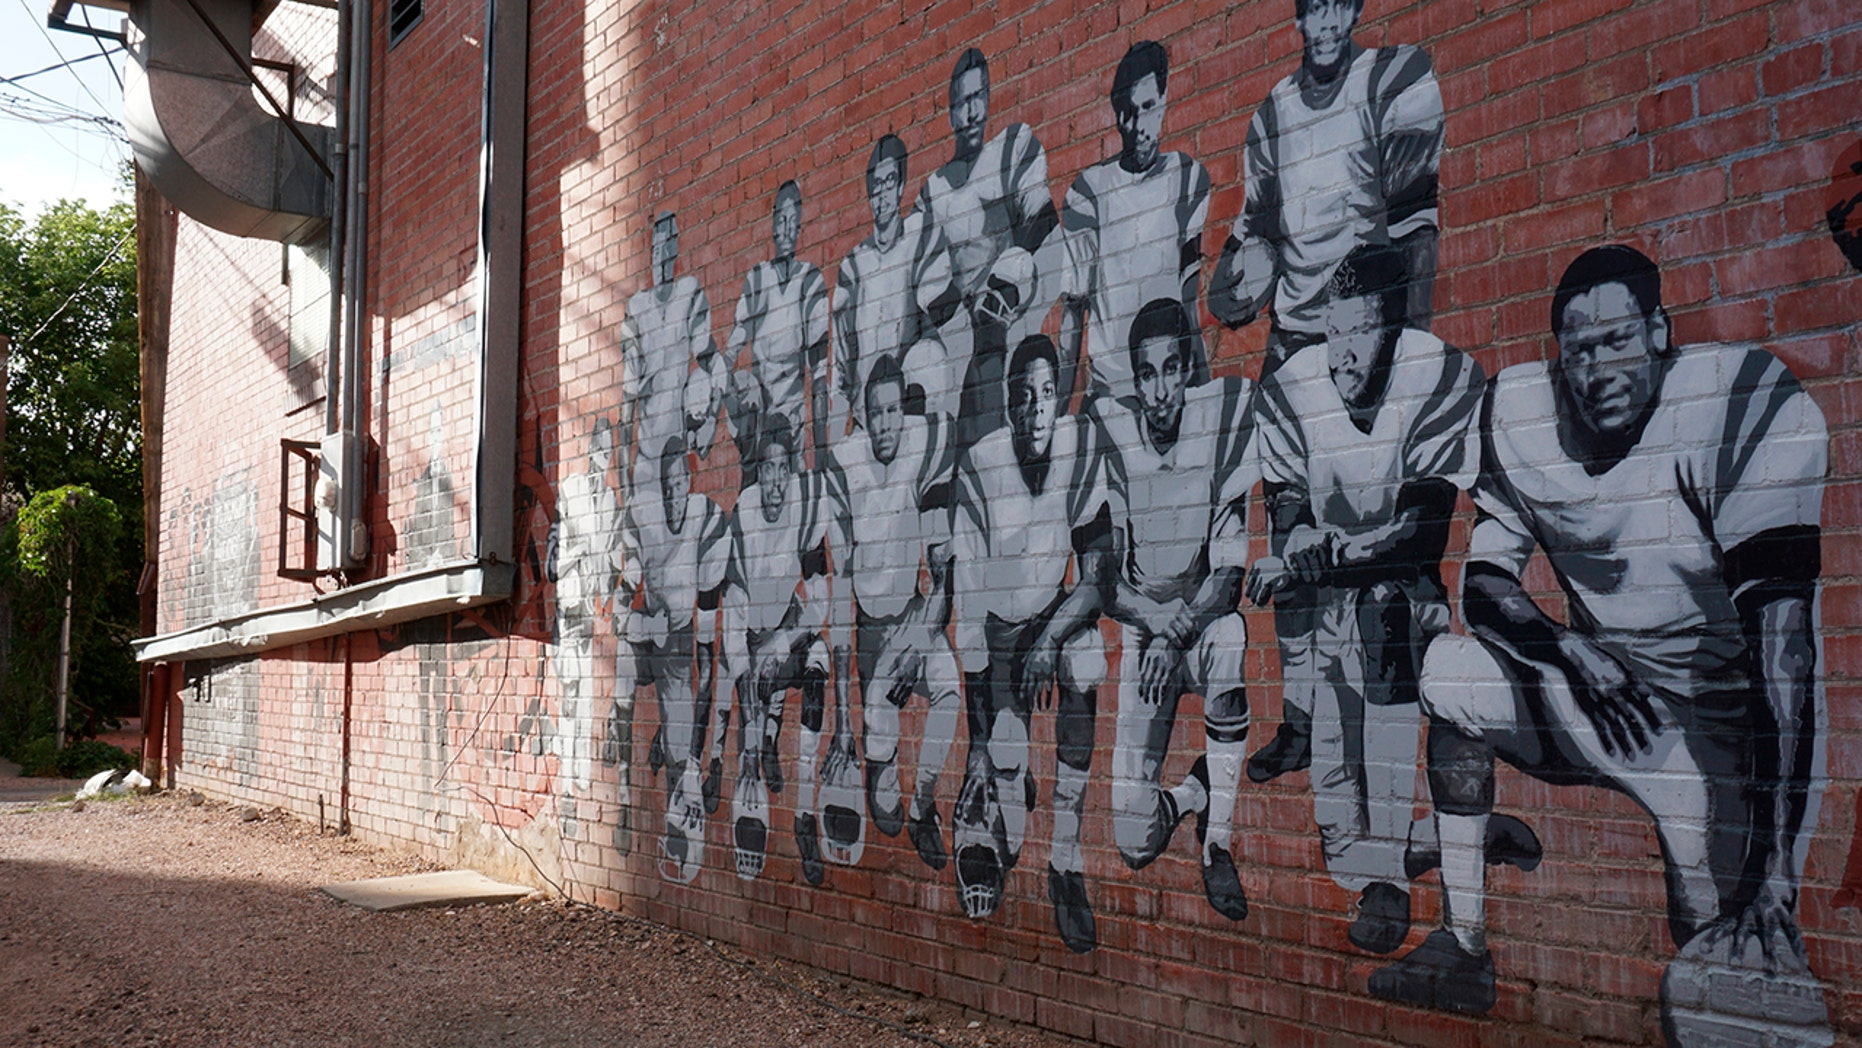 In this Wednesday, Sept. 11, 2019 photo shows part of an alleyway mural in downtown Laramie, Wyo., that honors the Black 14. The Black 14 were black athletes dismissed from the University of Wyoming football team in 1969 for seeking to protest racism by wearing black armbands in a game against Brigham Young University. The university plans to dedicate a plaque honoring the group at War Memorial Stadium on Friday. (AP Photo/Mead Gruver)